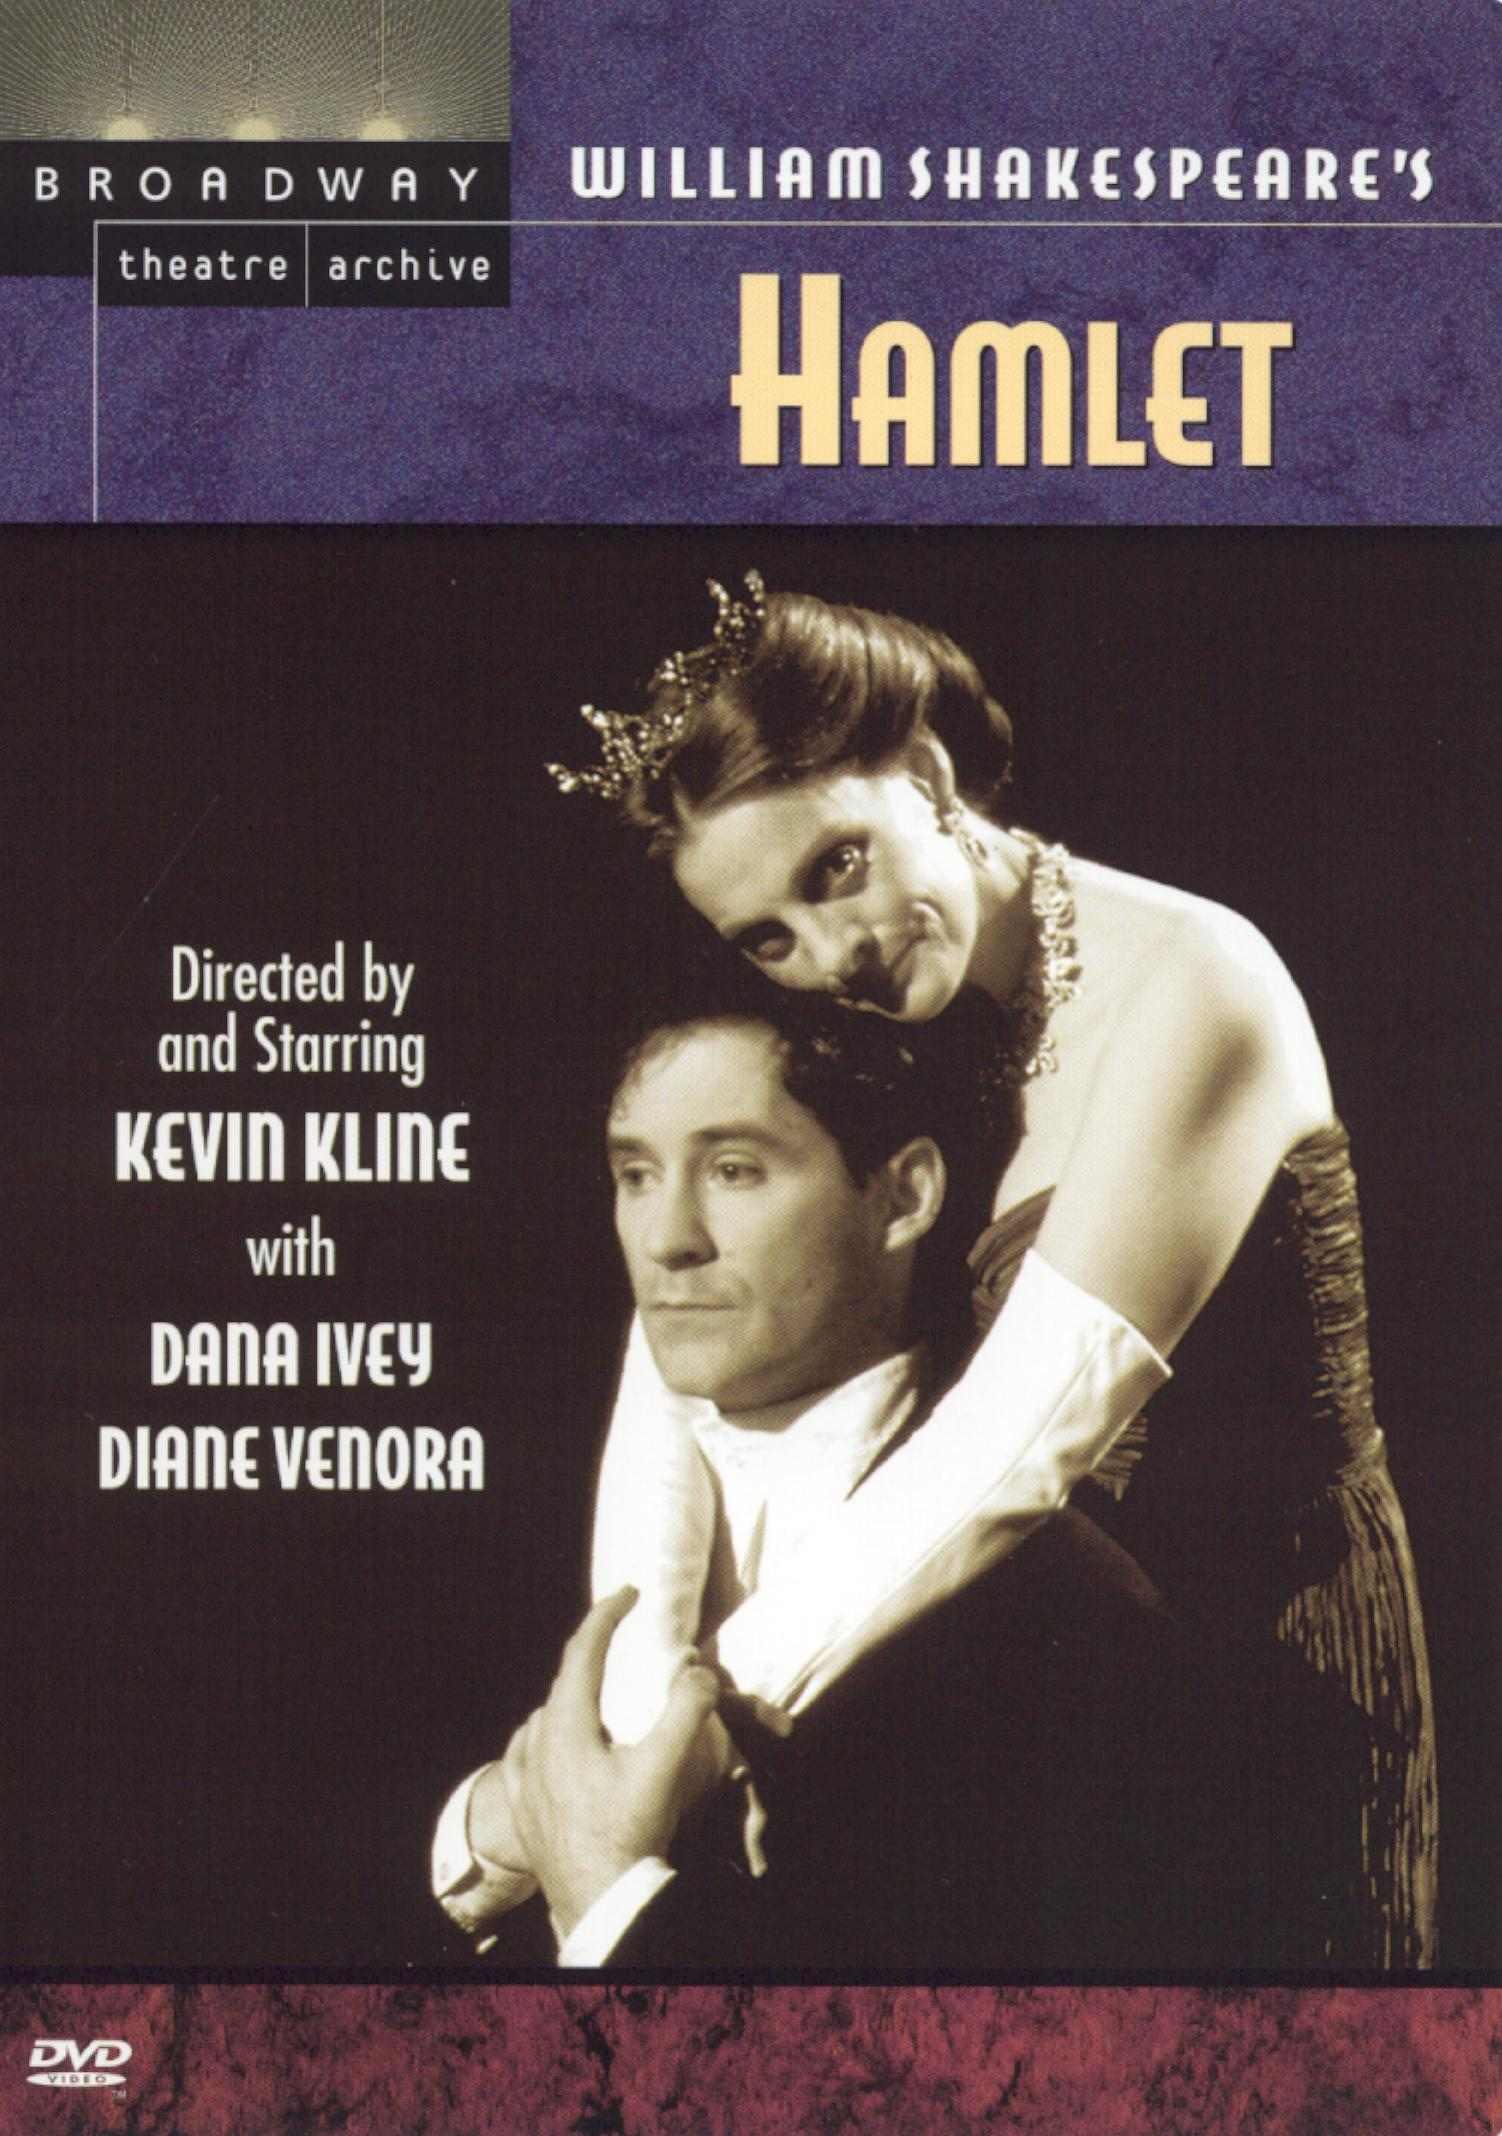 the awakening and hamlet Reminding us at the very beginning that hamlet's main message is about awakening, what it is and, most importantly, what it is not: the author john stubbs points out that you cannot awaken, for example, just by behaving differently from now on, that is by adding virtue to your resume.